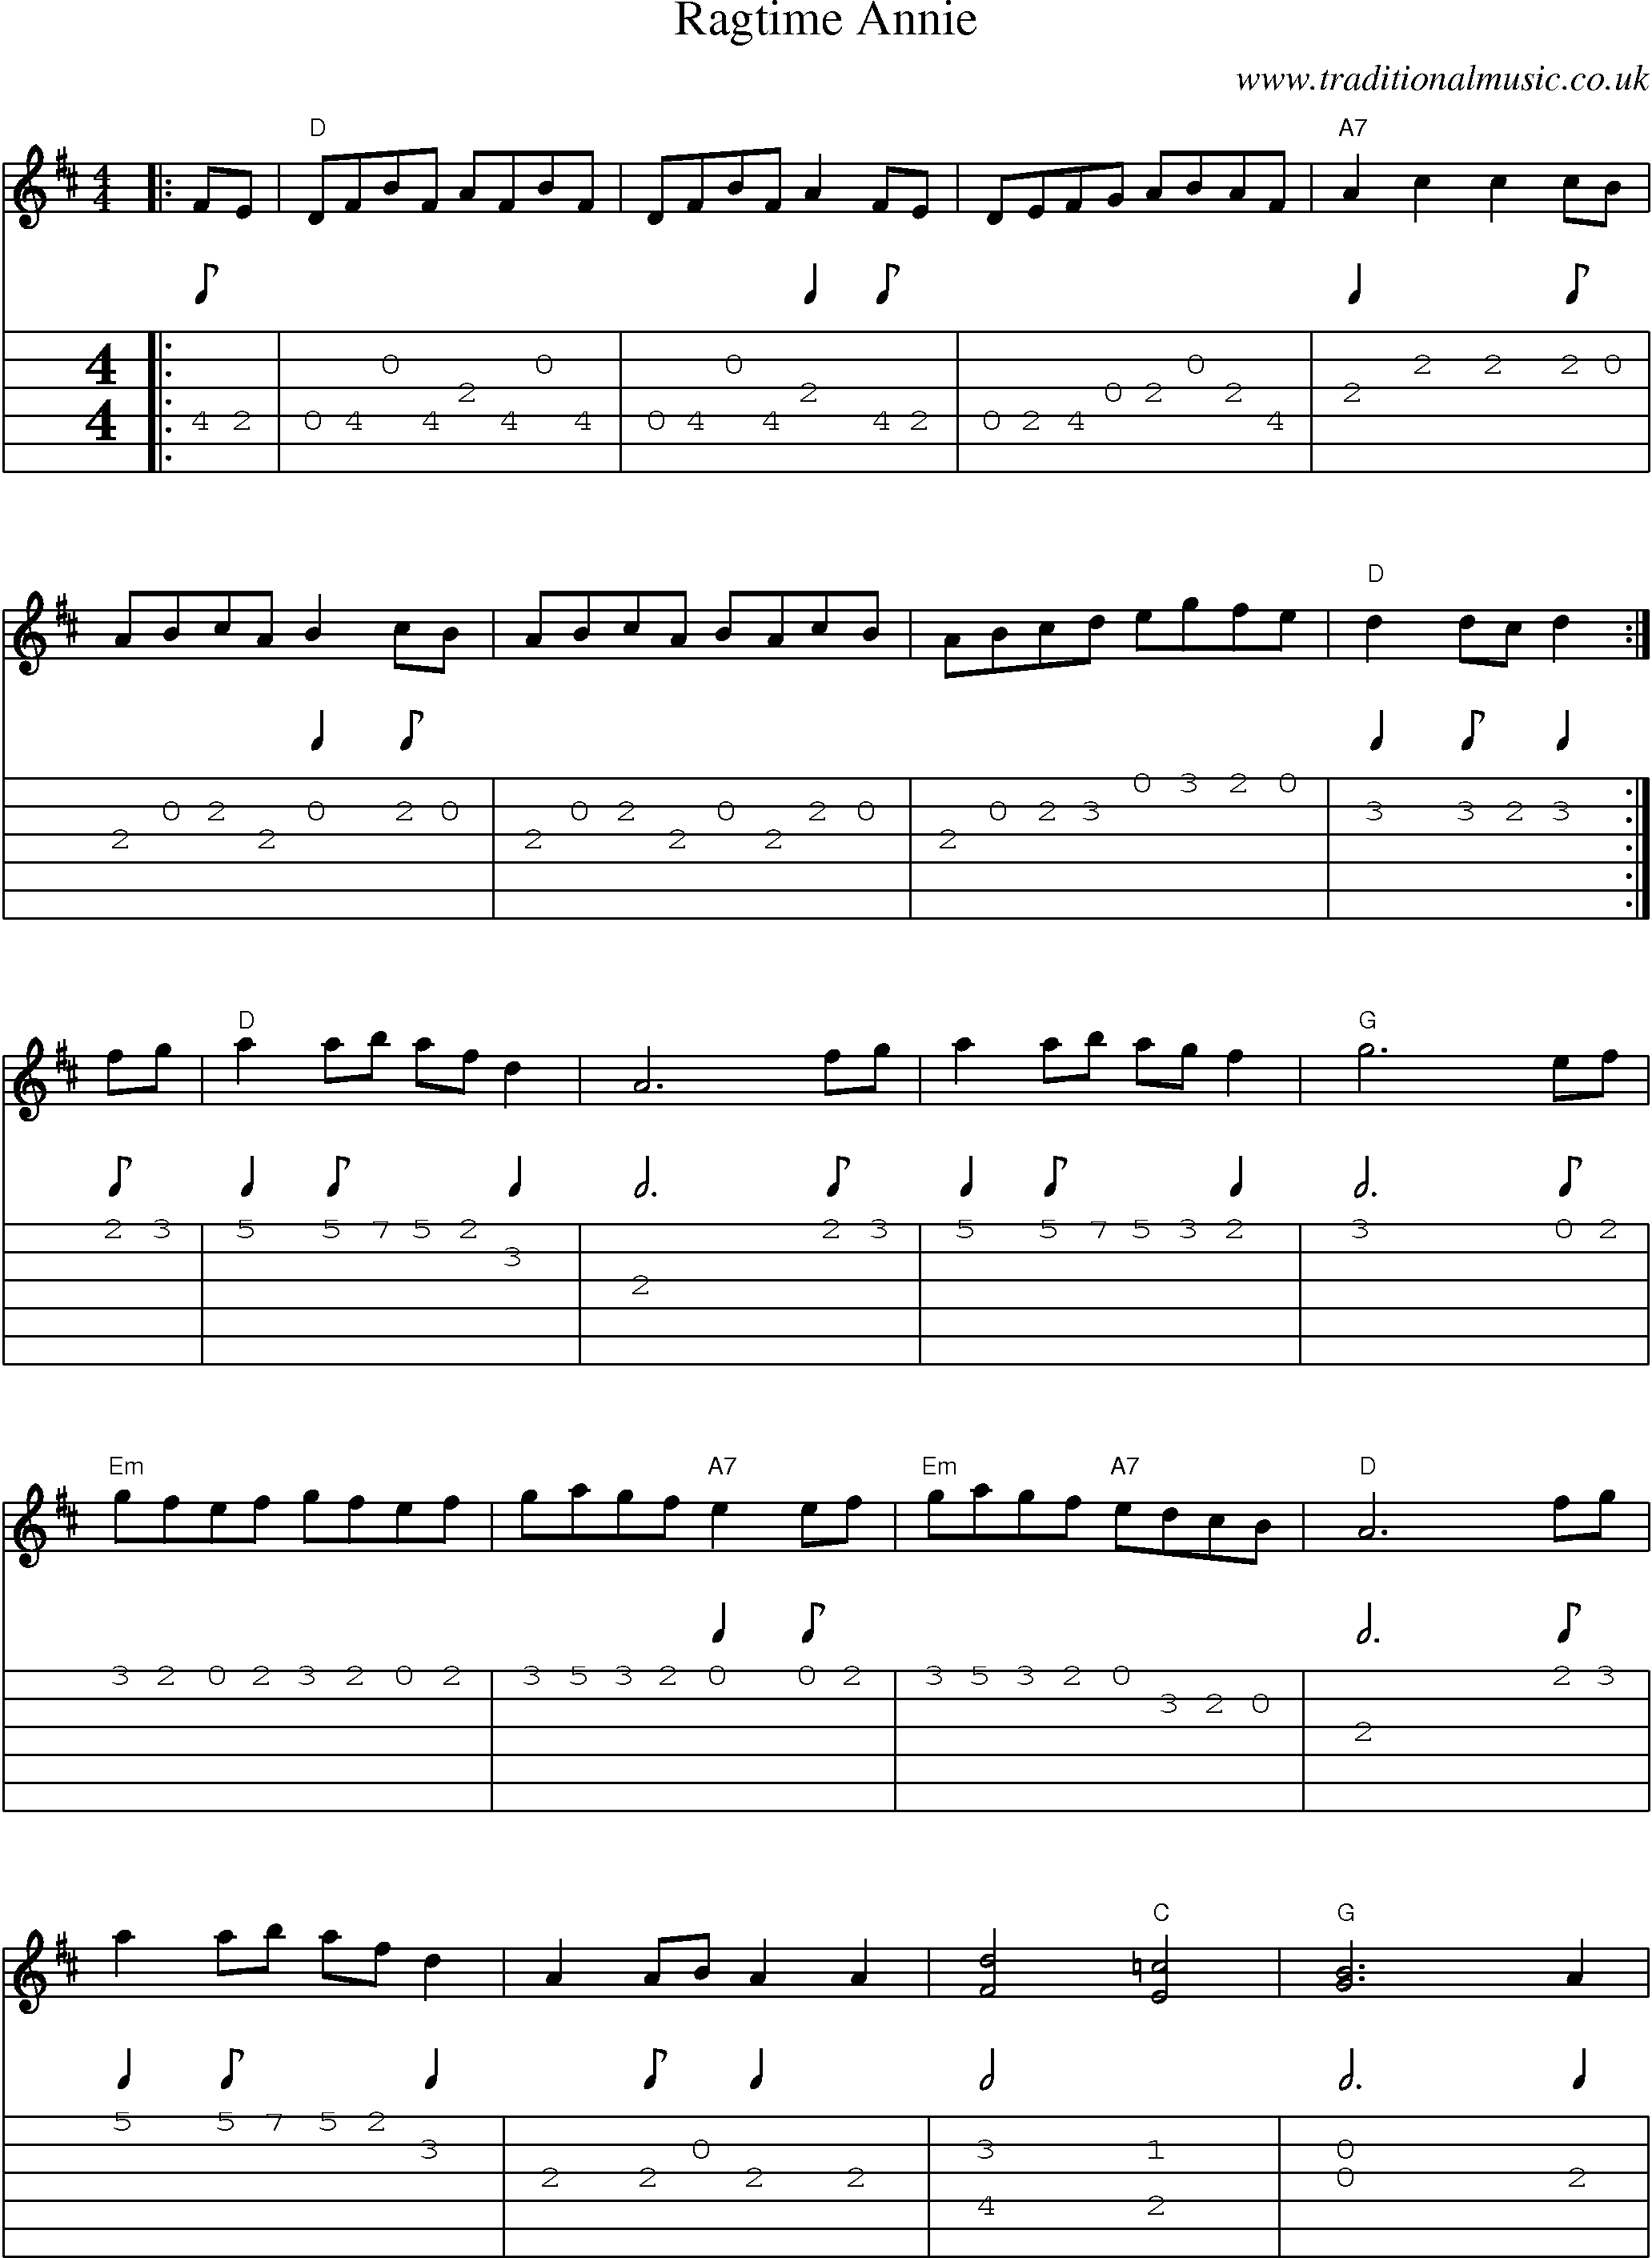 Music Score And Guitar Tabs For Ragtime Annie Mandolin Jams In